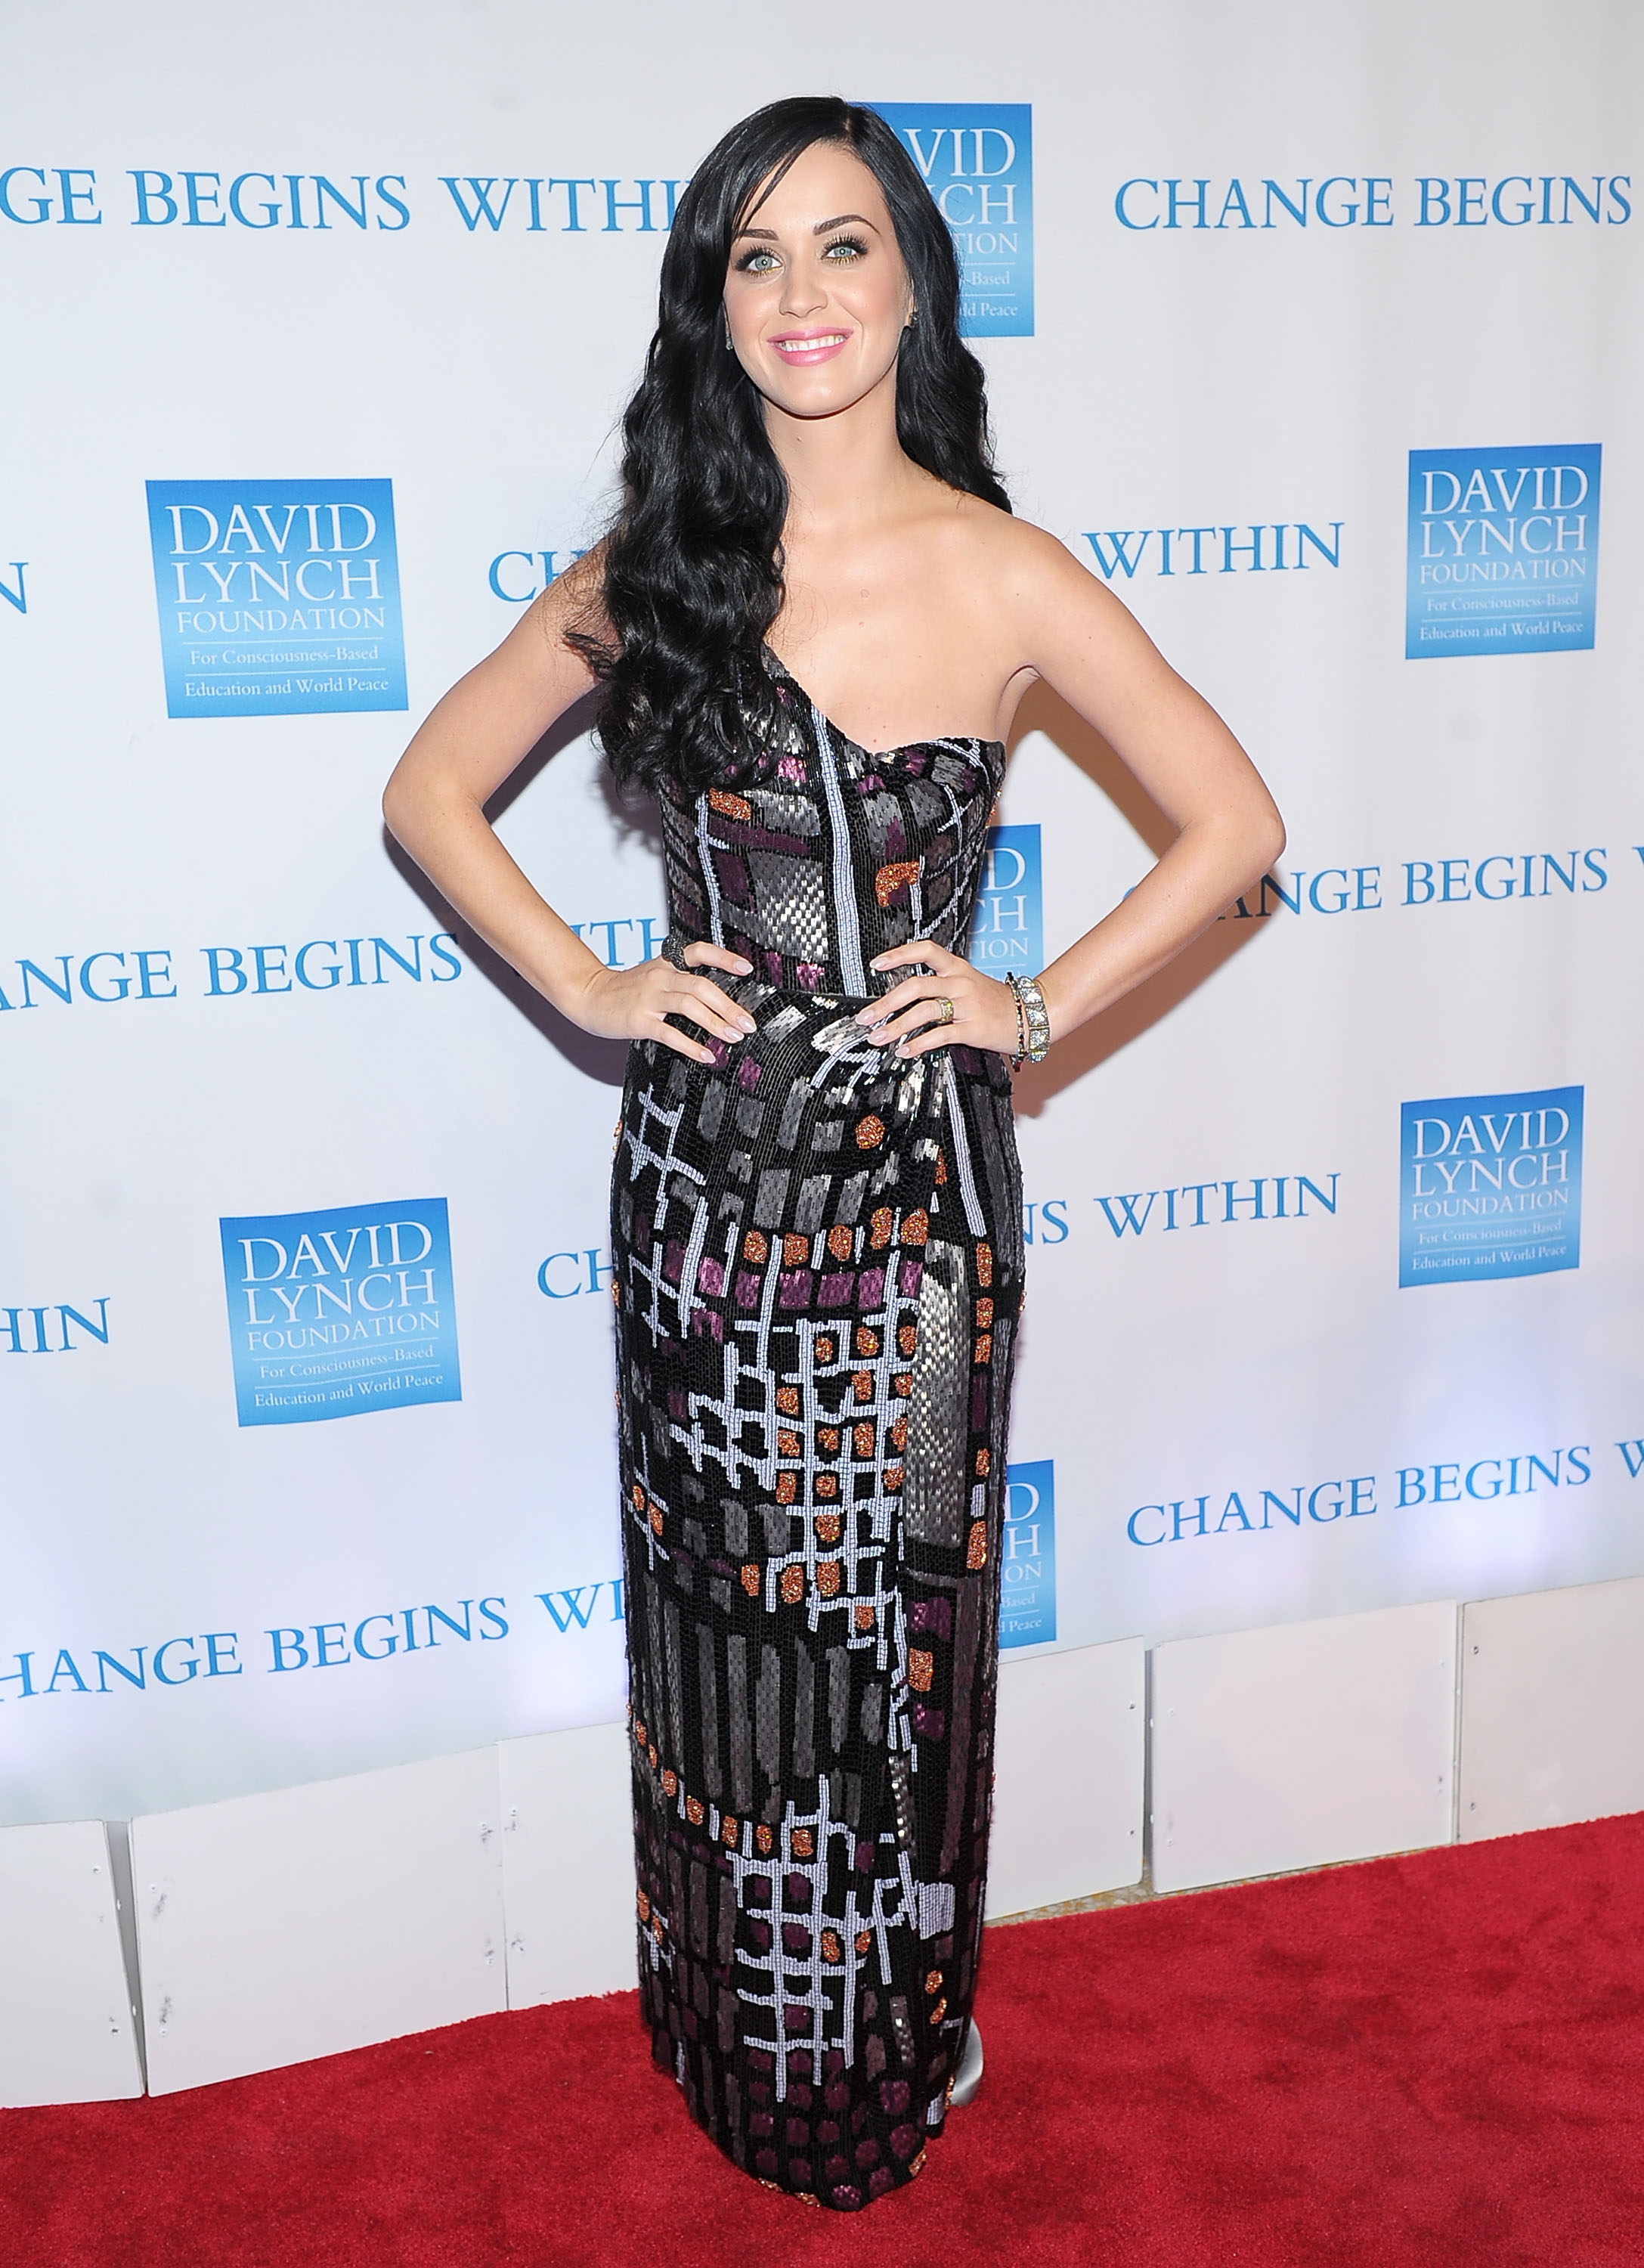 katy perry at the echo music awards 2012 mydaily uk